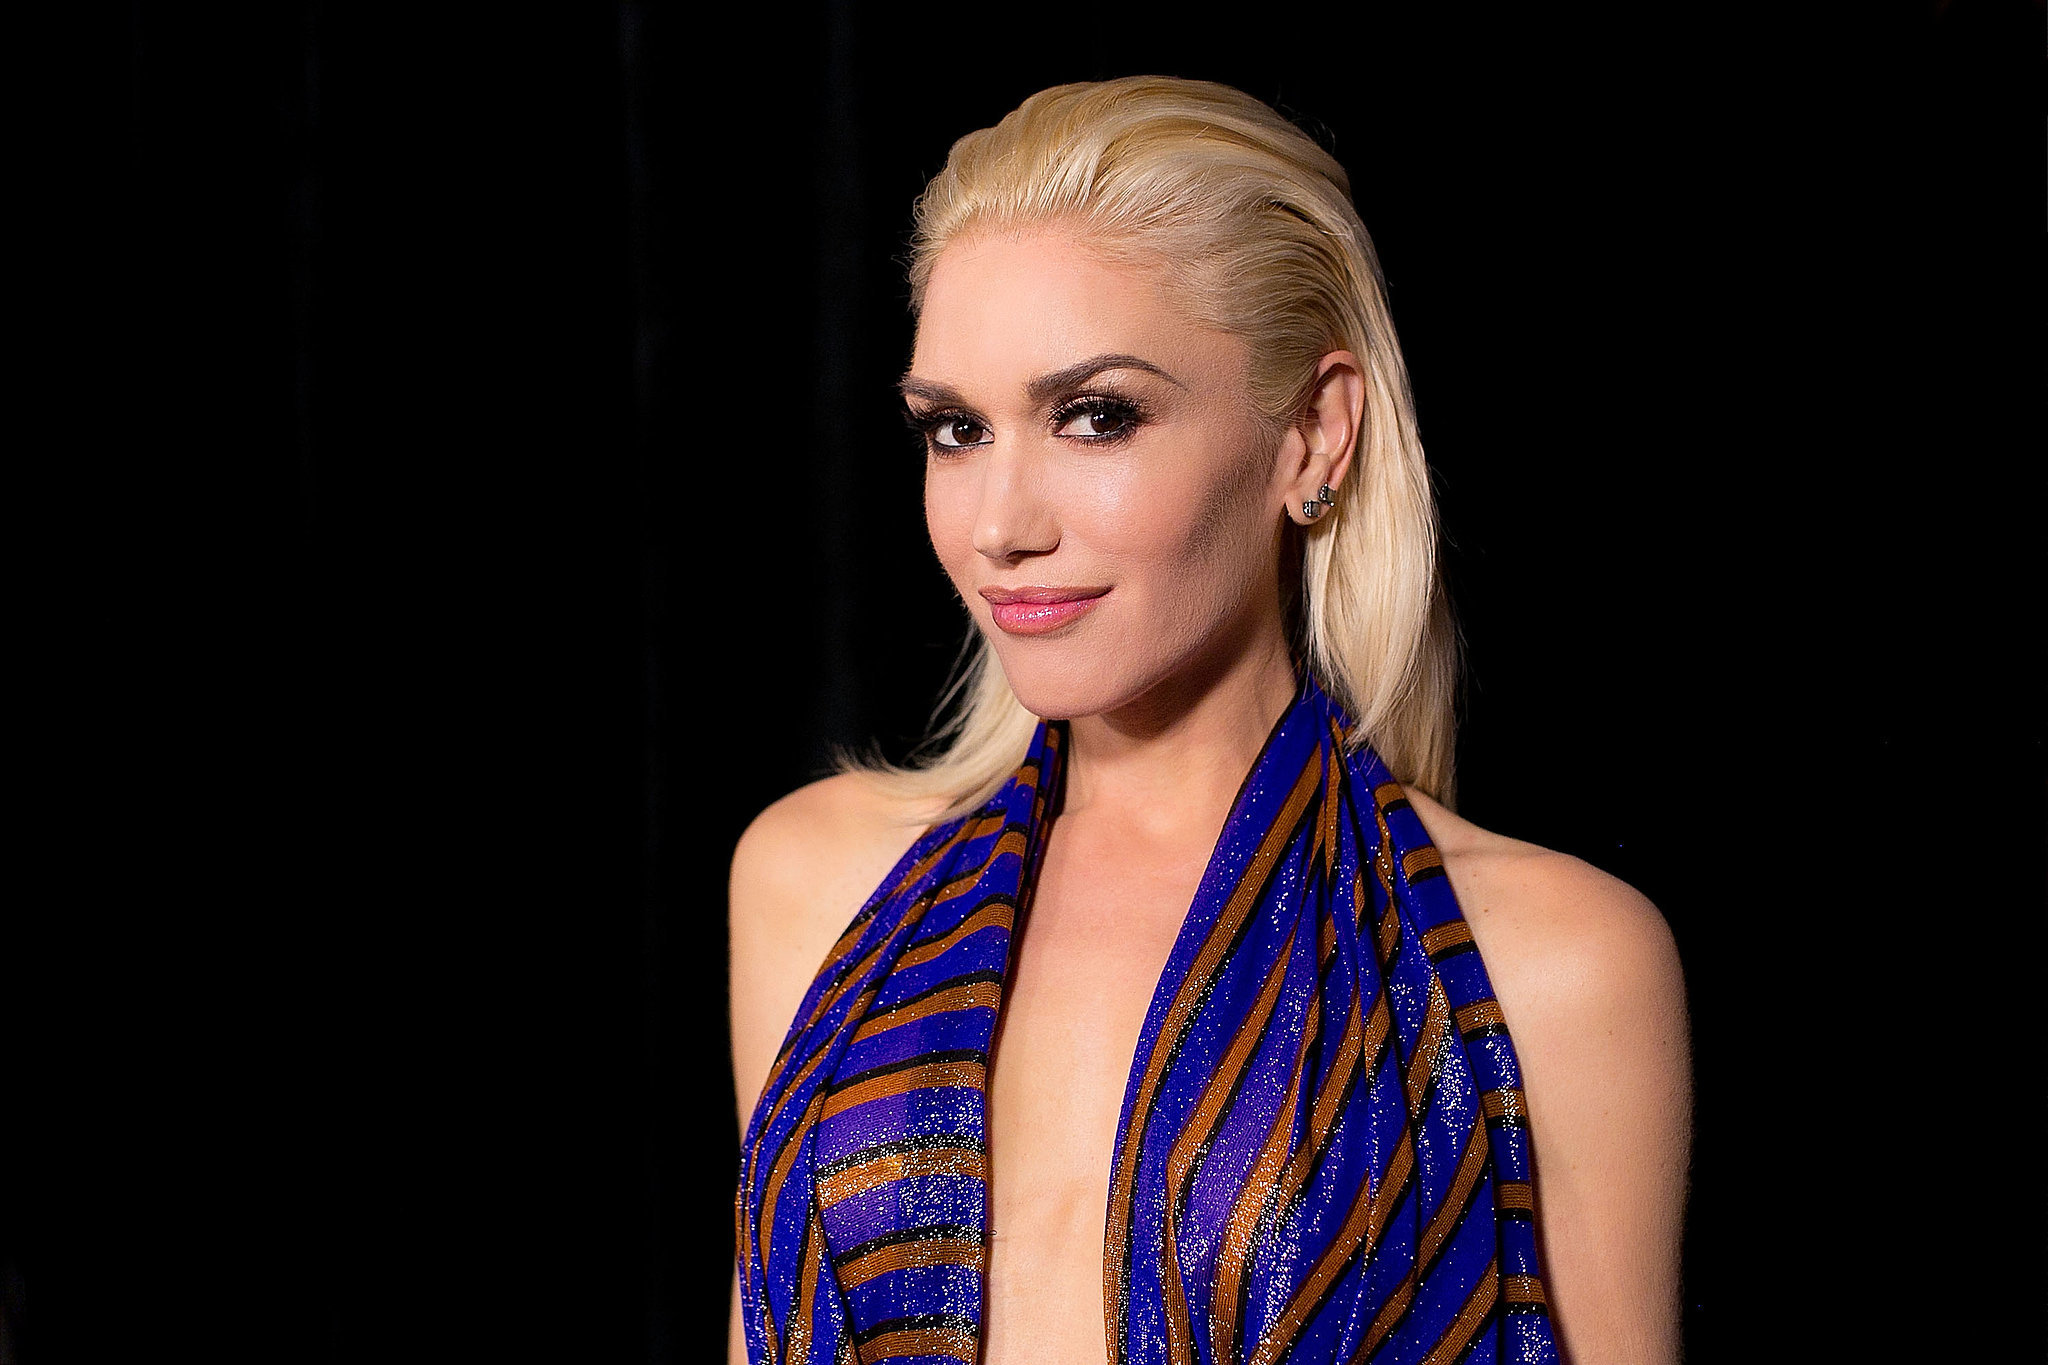 Gwen Stefani returns with new single 'Make Me Like You' – listen